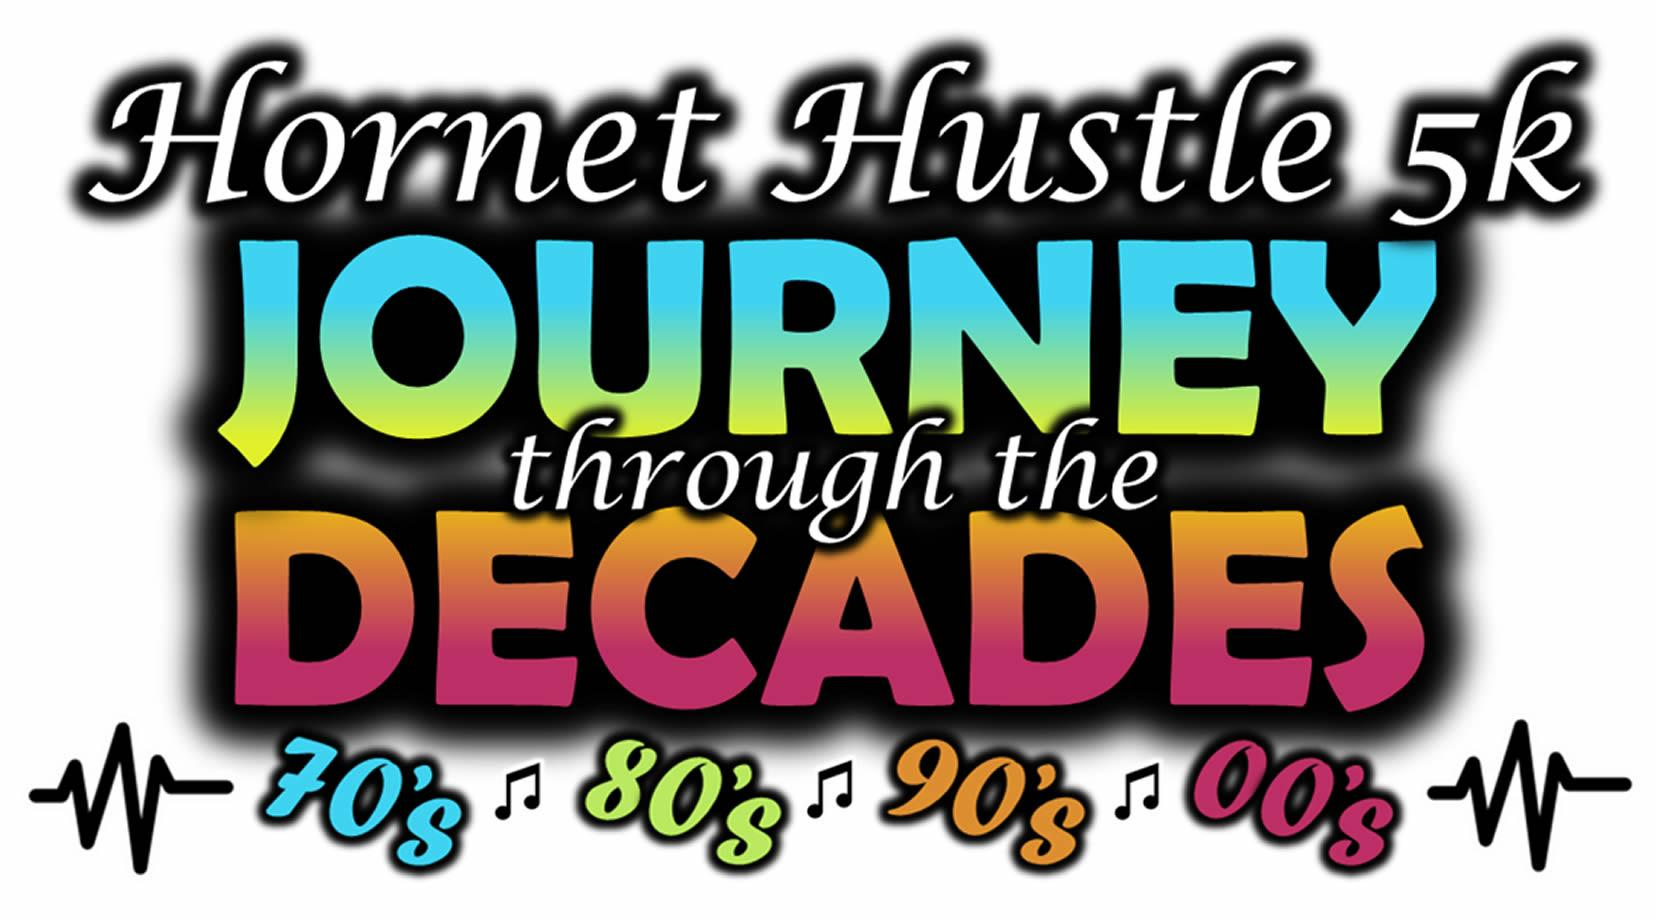 Journey Through the Decades Hornet Hustle 5k